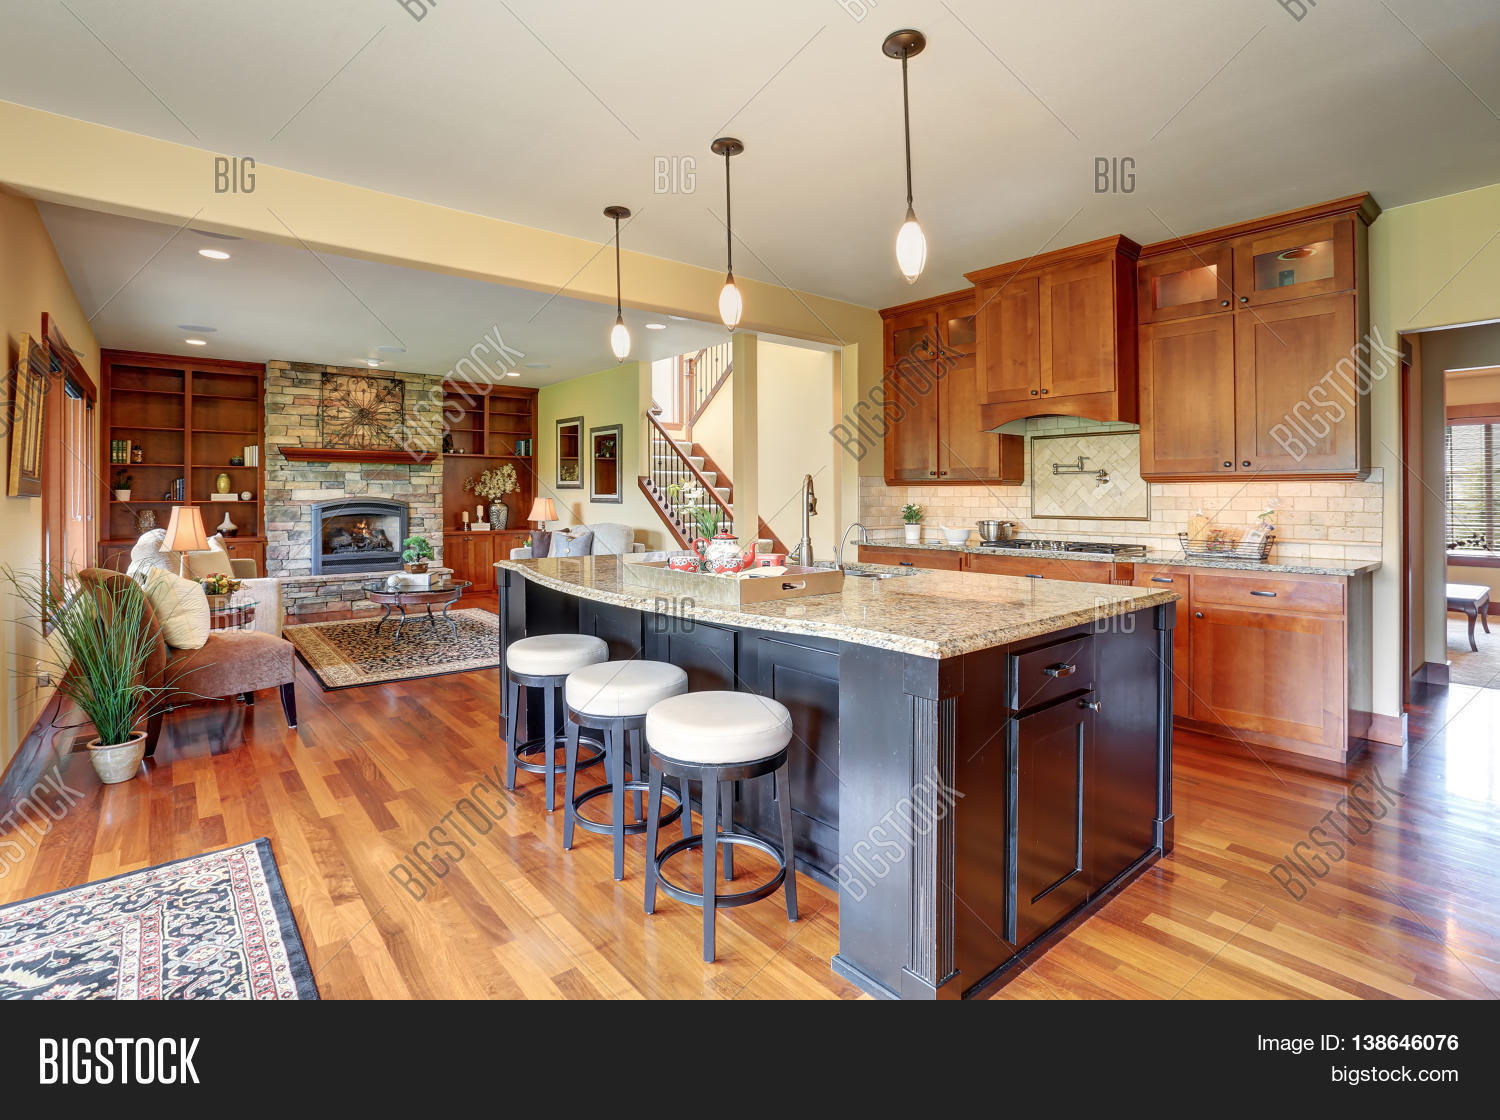 Small Kitchen Area Small Kitchen Area Open Floor Plan Image And Photo Bigstock